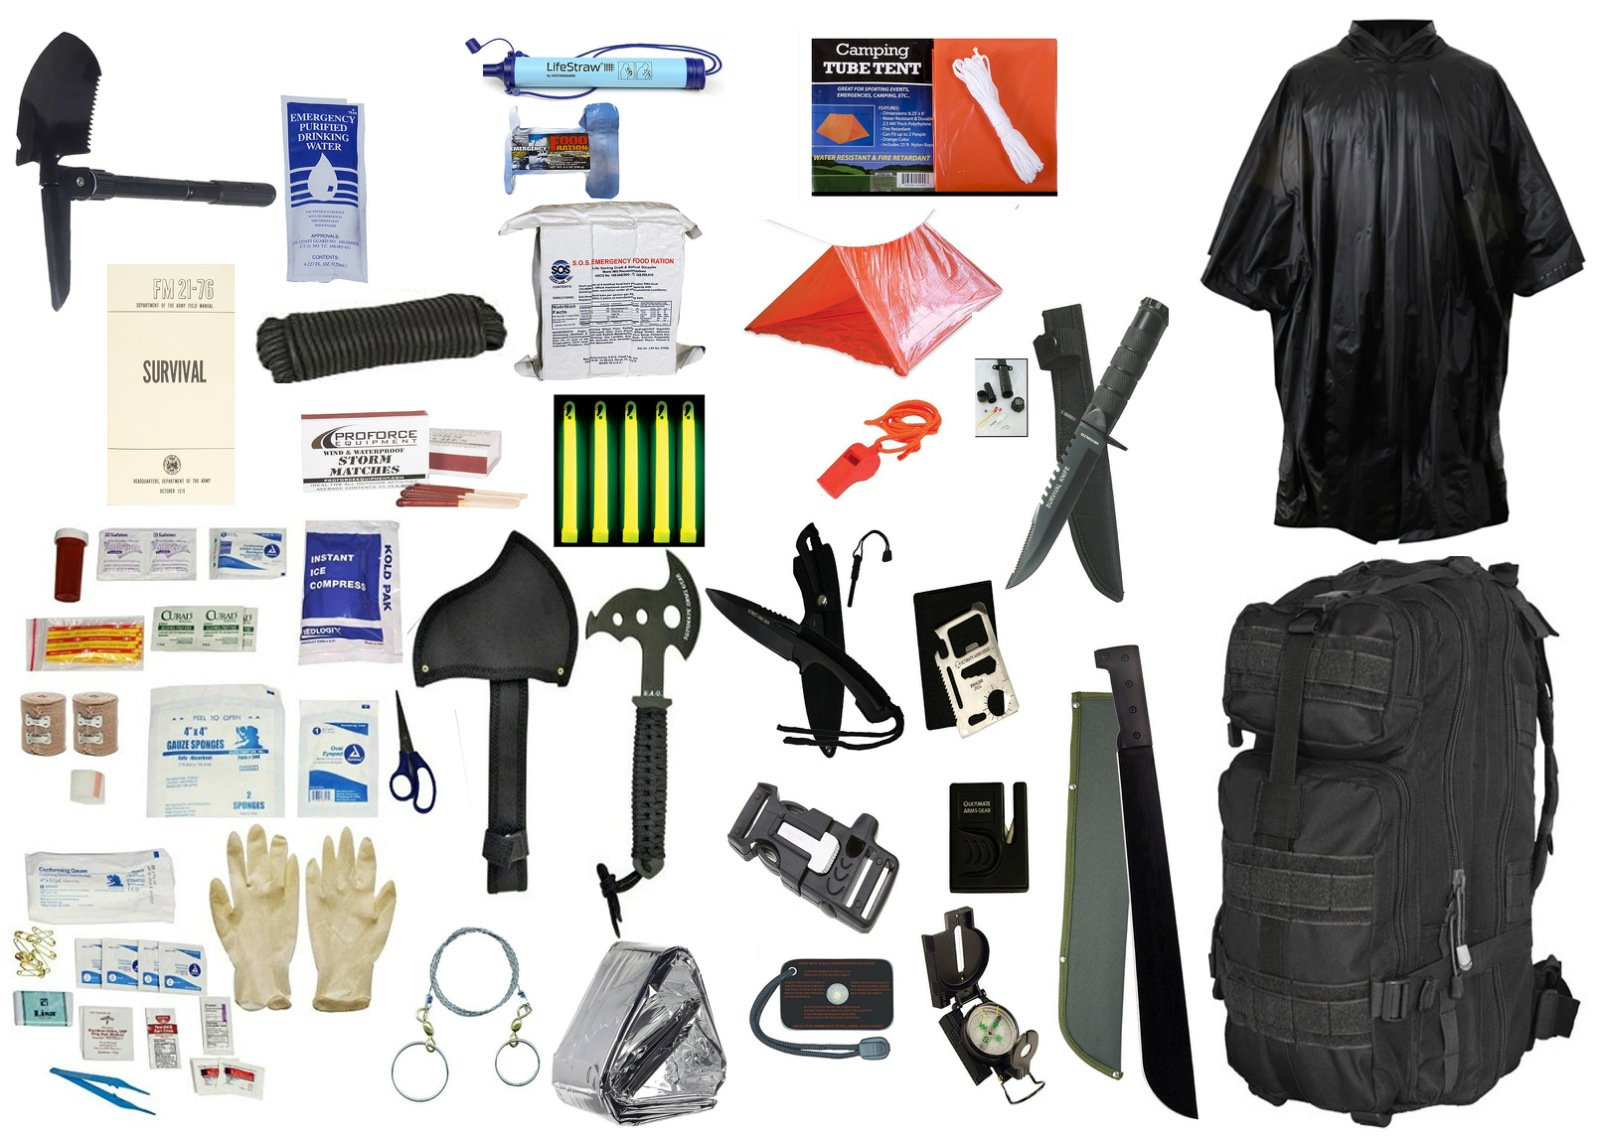 1 Person Supply 5 Day Emergency Bug Out S.O.S. Food Rations, Drinking Water, LifeStraw Personal Water Filter, First Aid Kit, Tent, Blanket, Backpack, Poncho + Essential 21 Piece Survival Gear Set